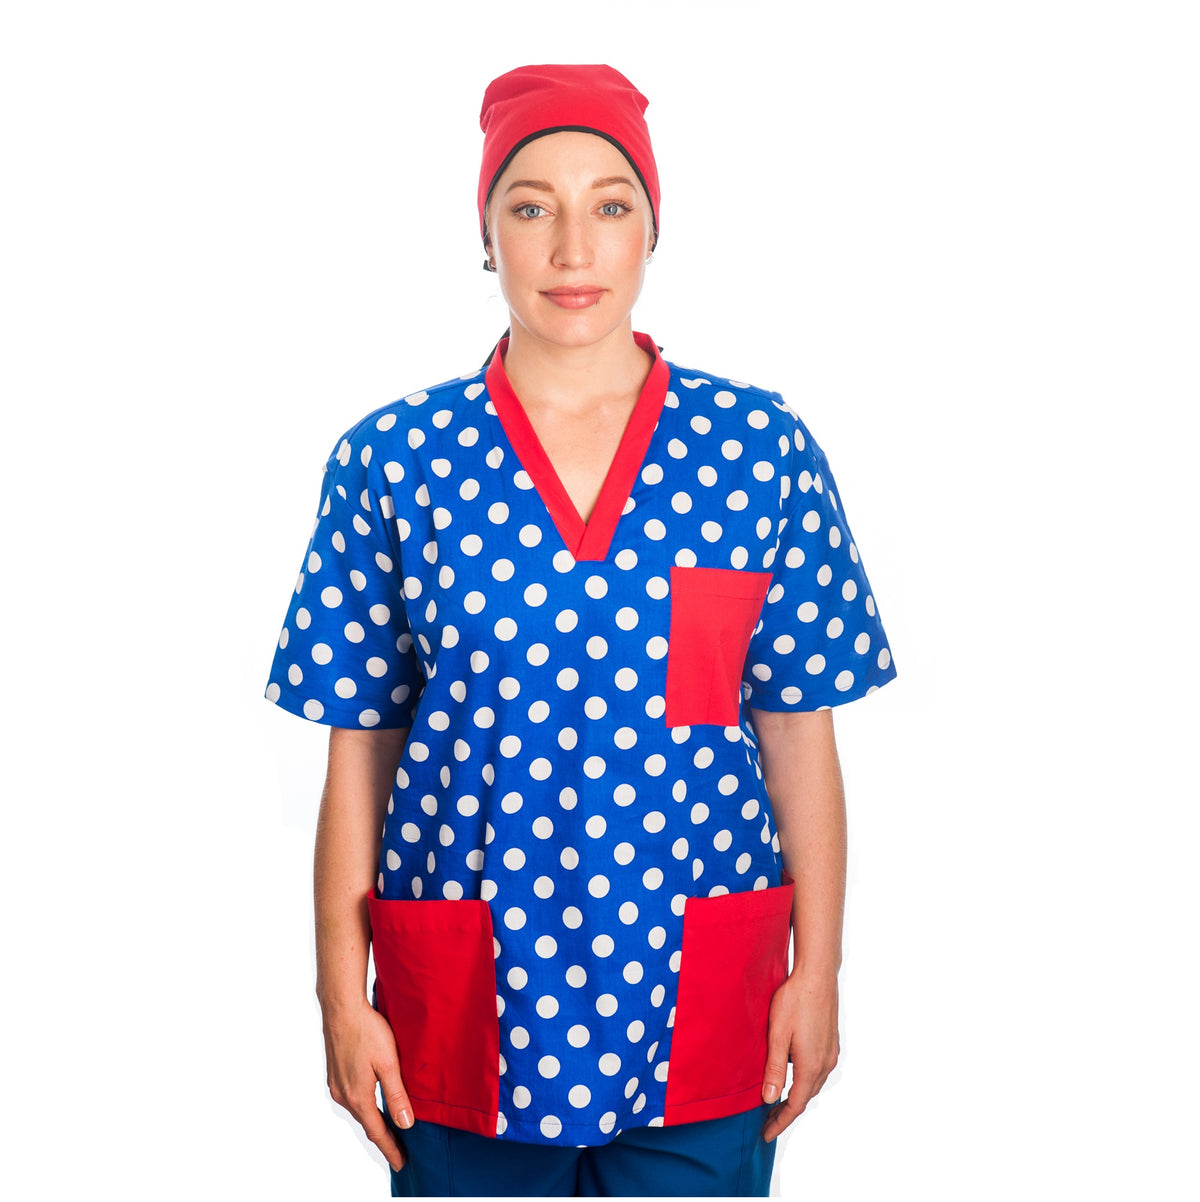 Unisex Scrubs Top - Patterned Colours